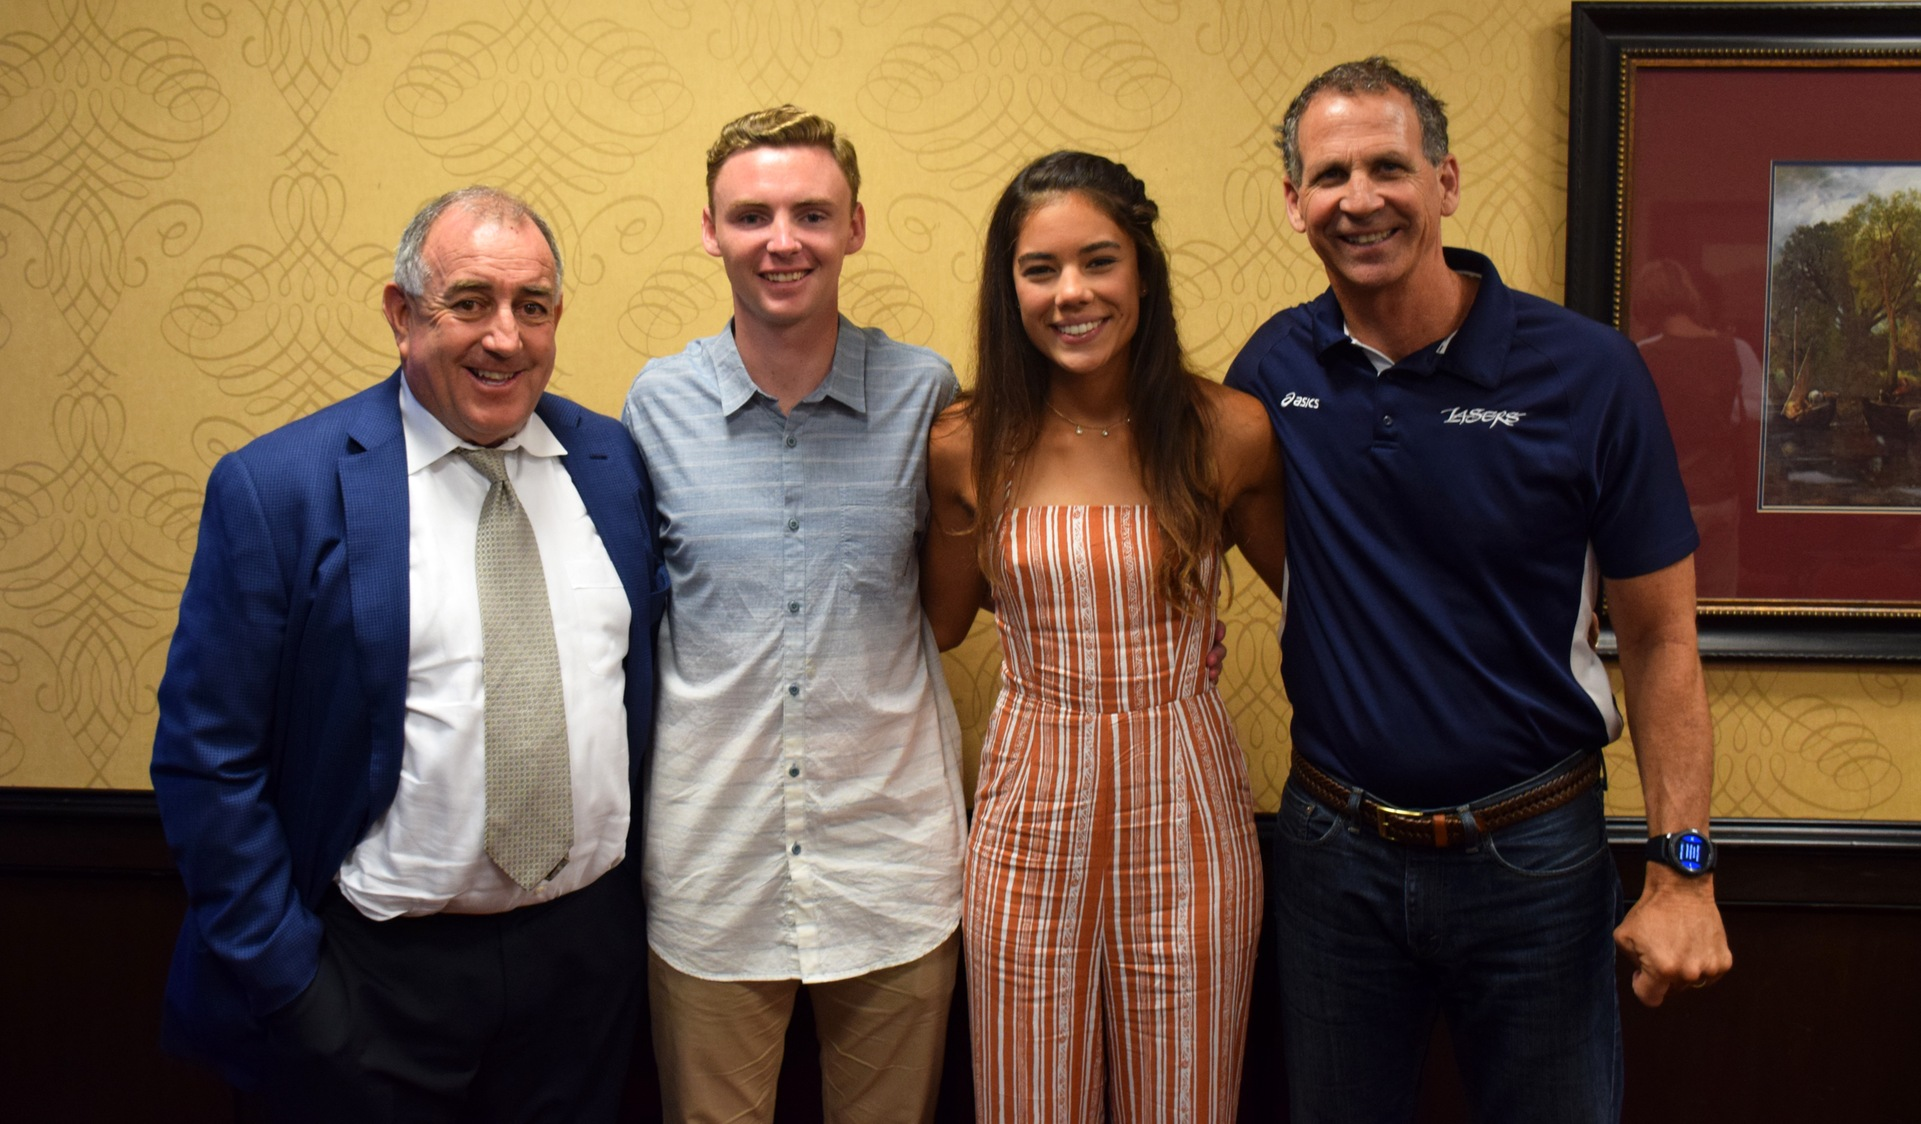 Renata Bath and Grant Joyce are IVC's scholar athletes of year